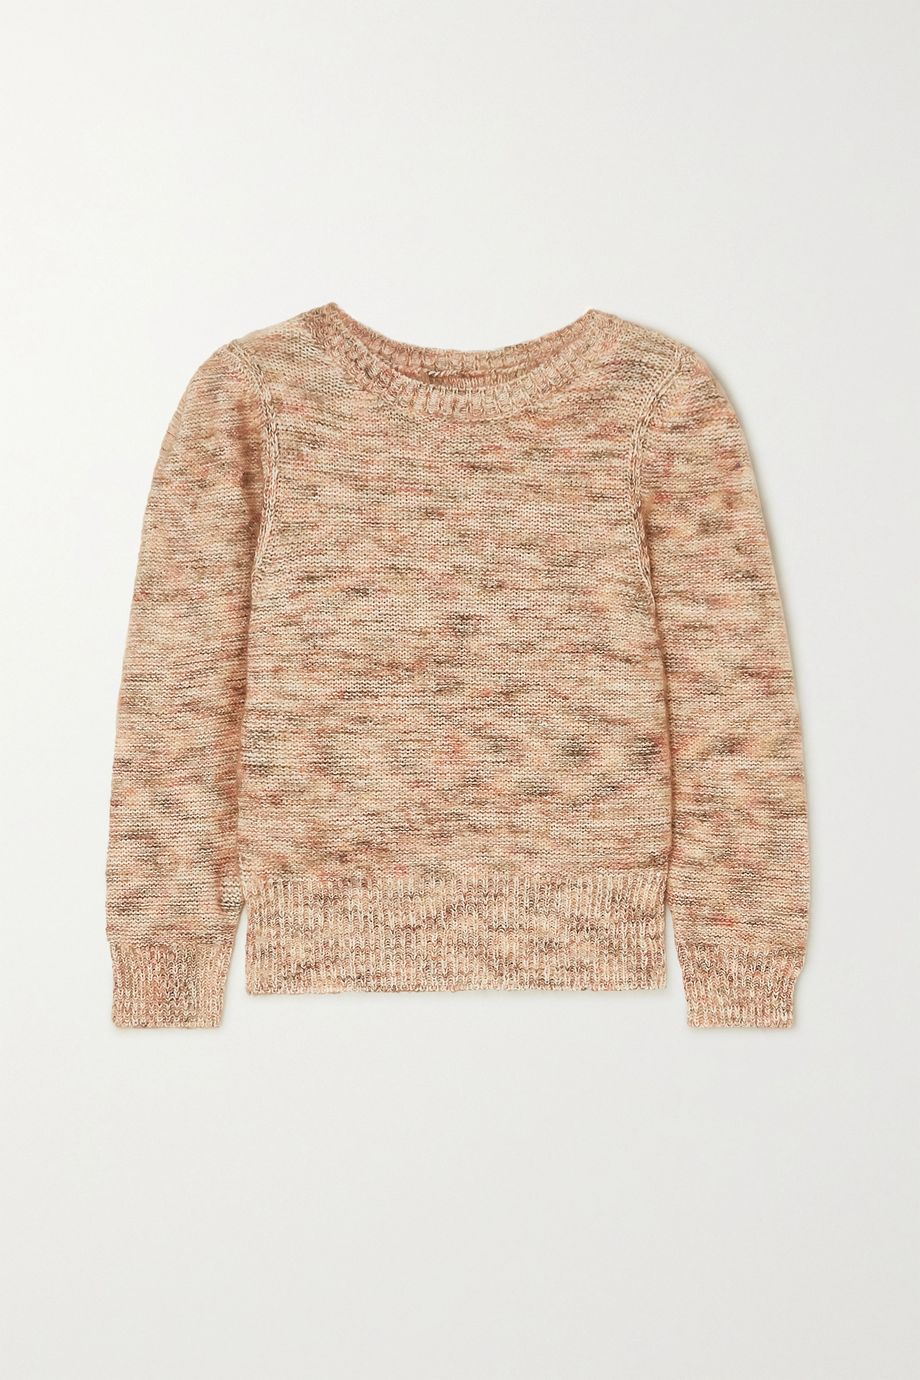 Vanessa Bruno Naja knitted sweater